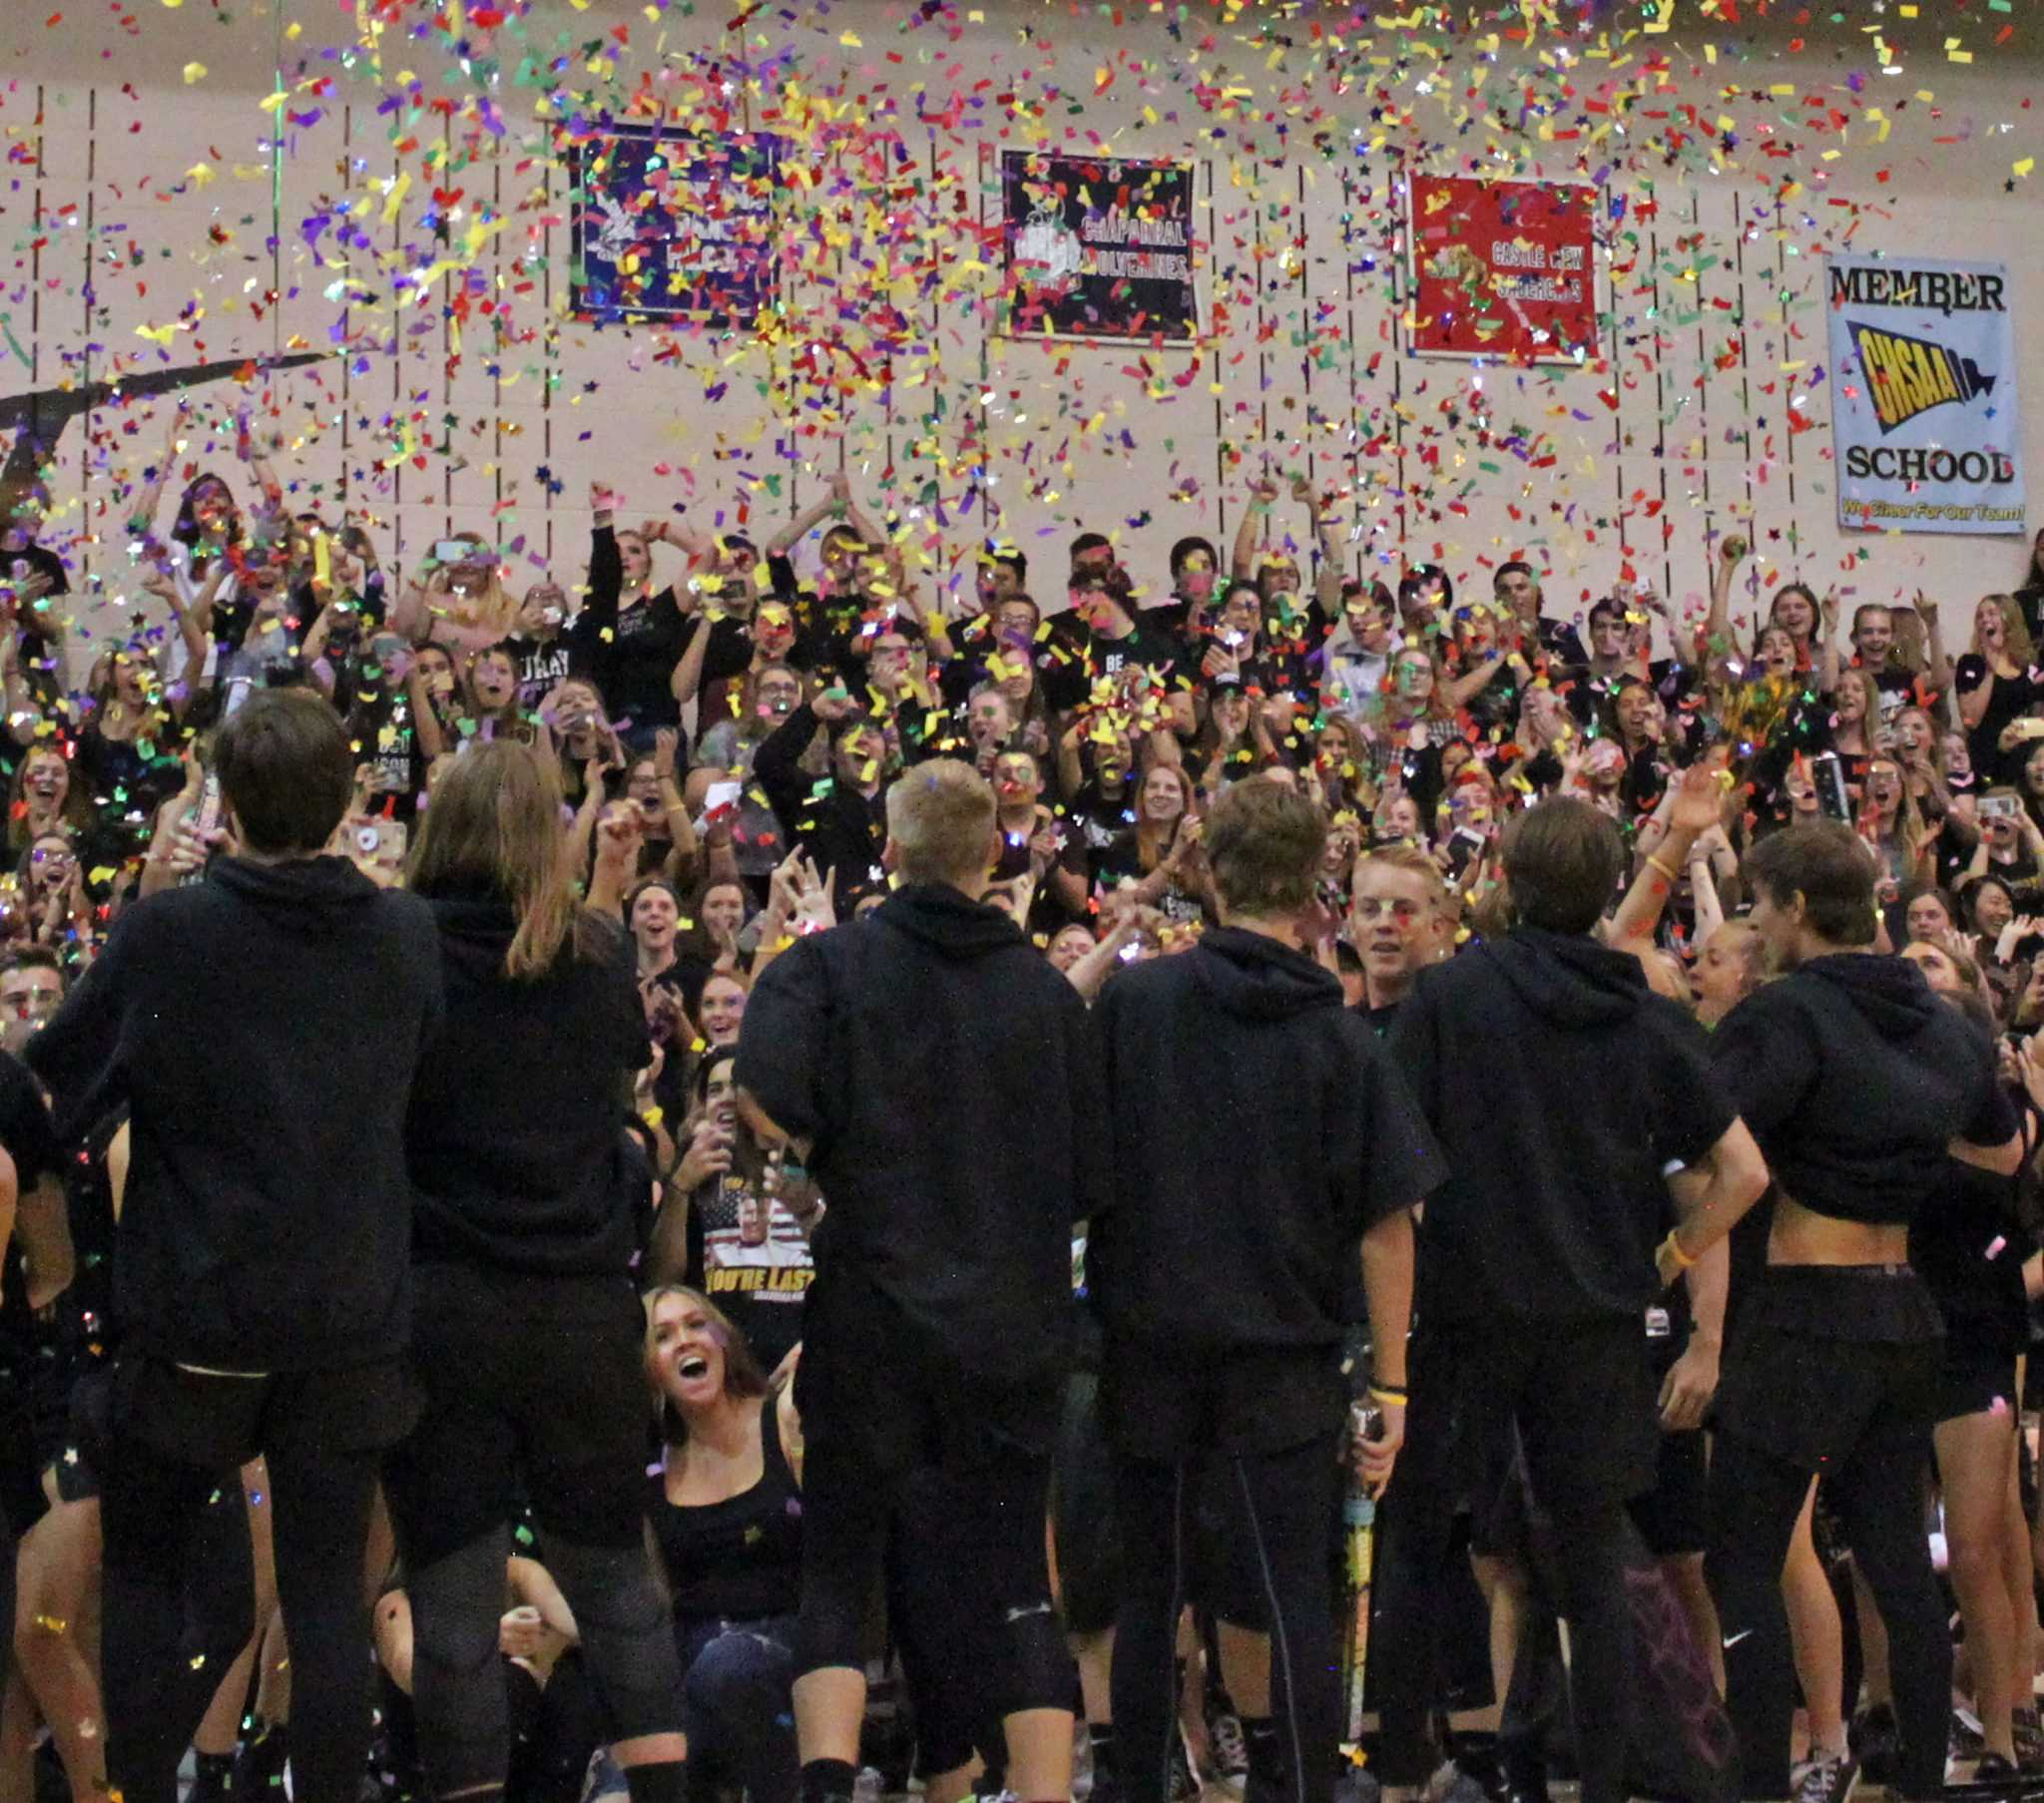 PHOTOS: Homecoming Closing Assembly